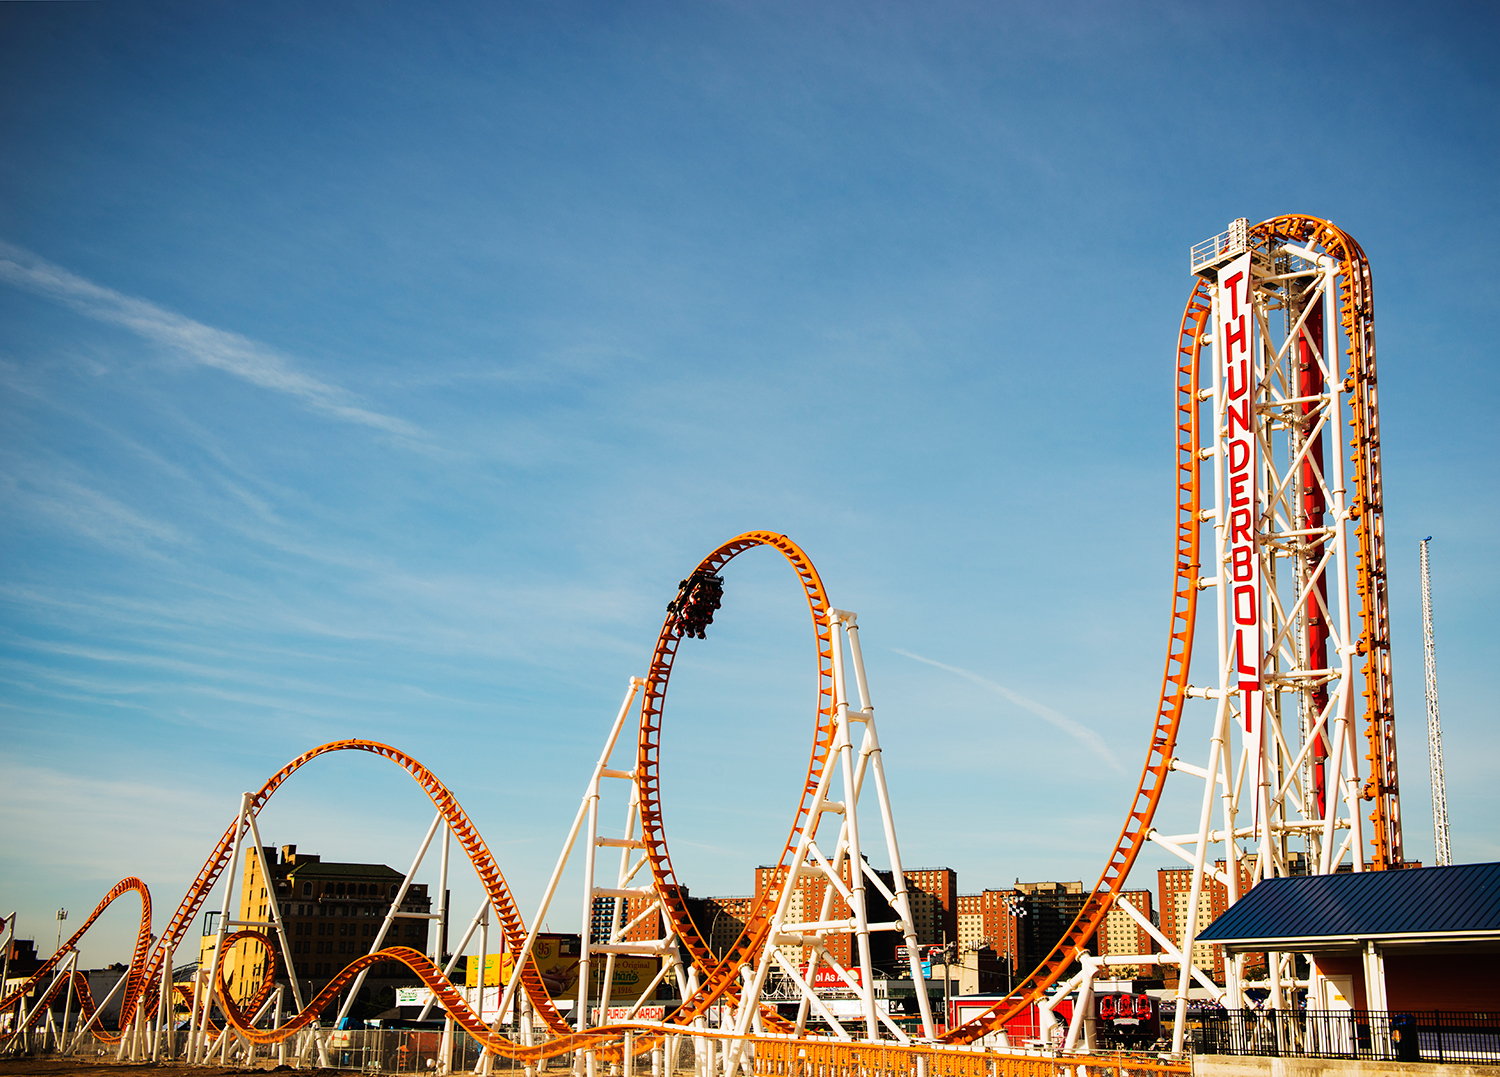 Rollercoasters and Your Health Connection